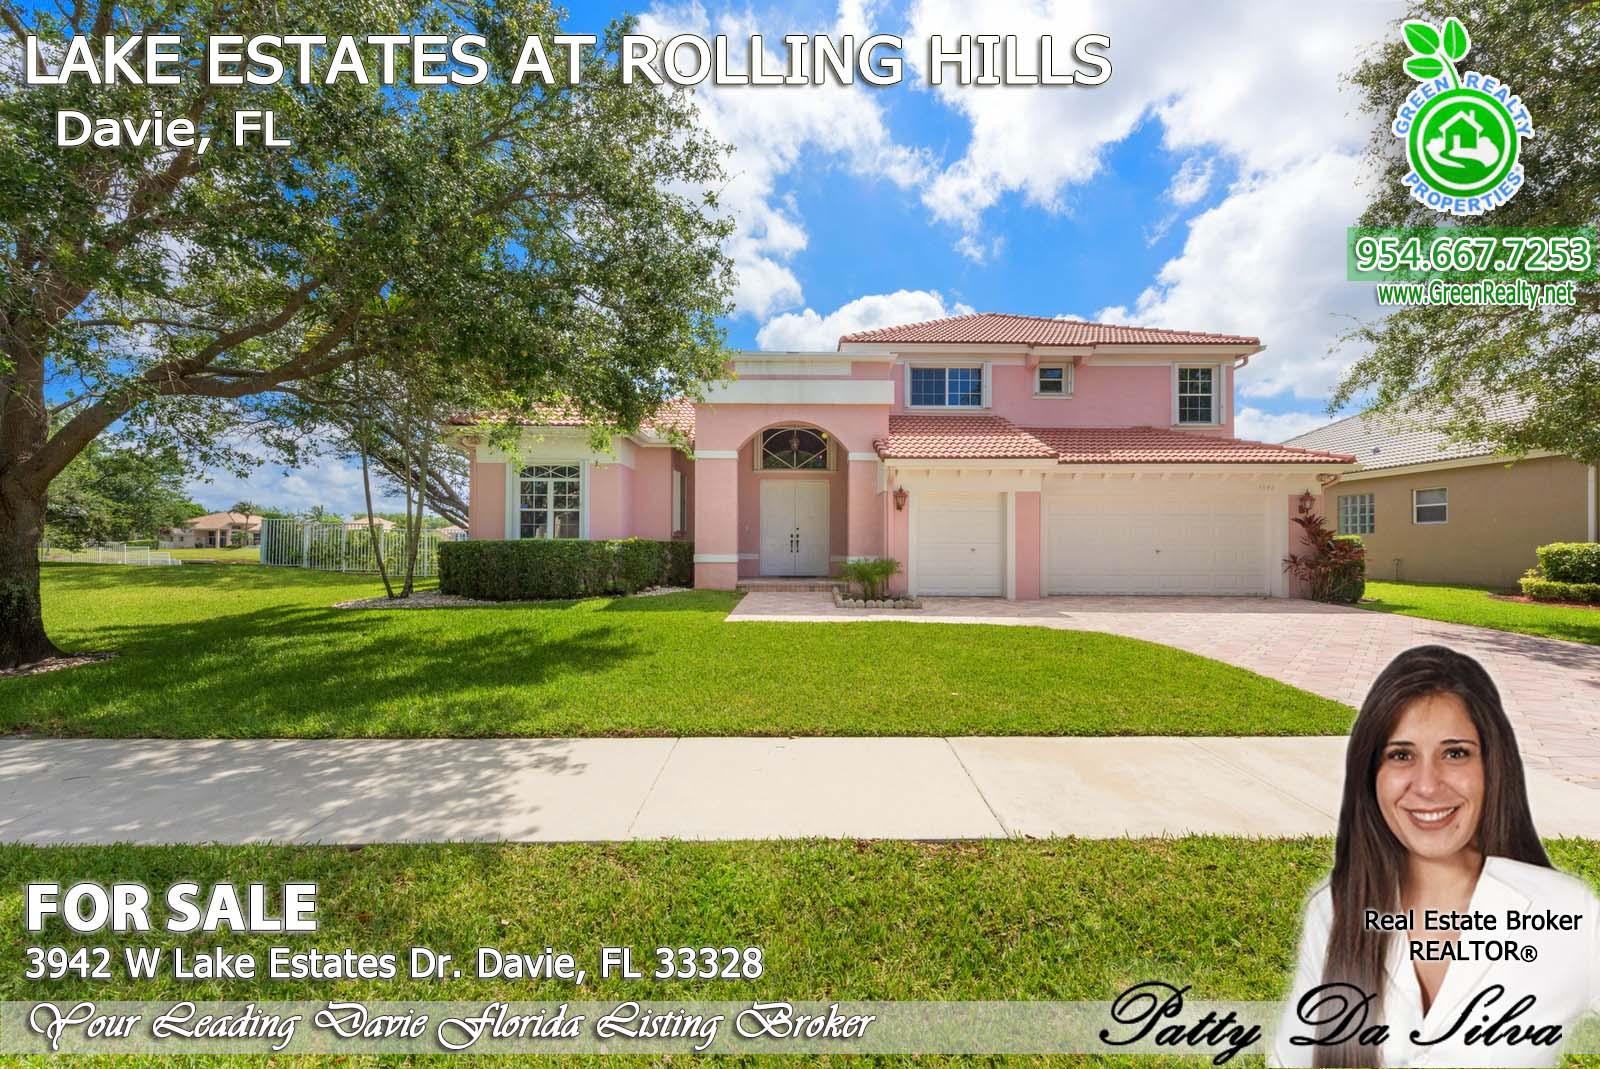 3942 W Lake Estates Dr - Davie FL 33328 (22)